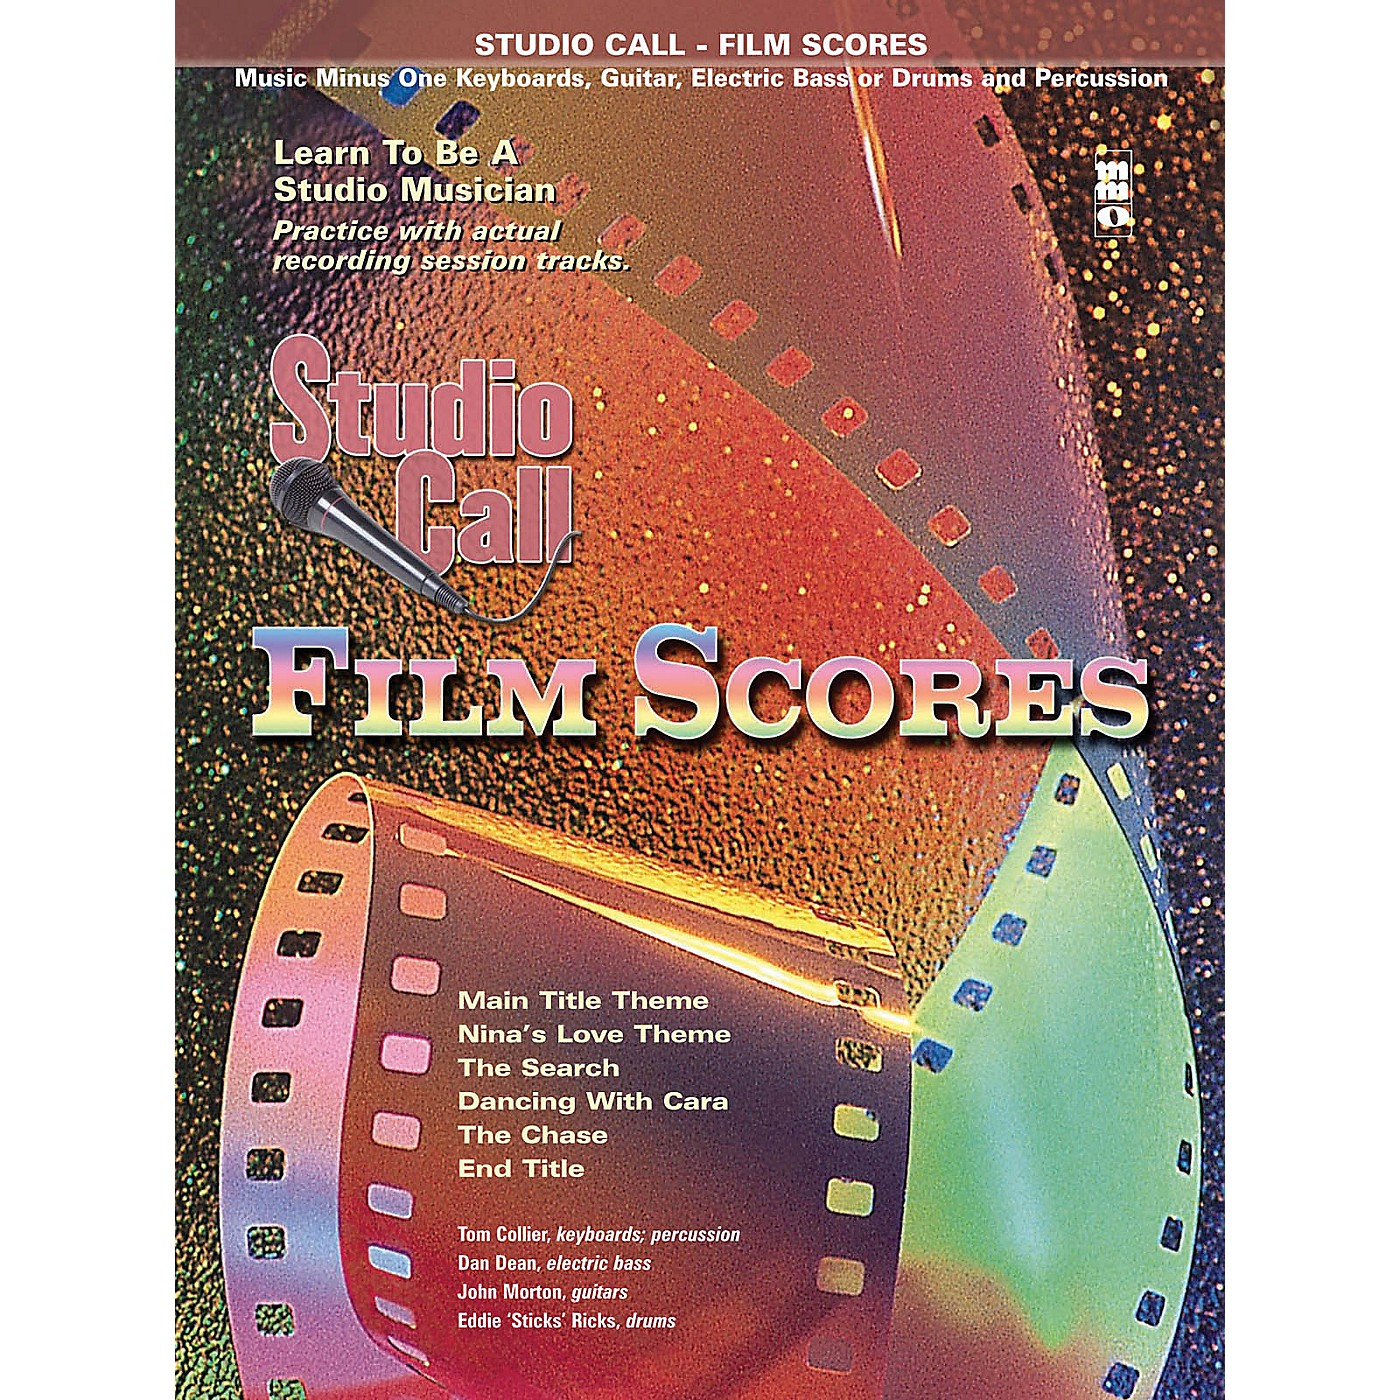 Music Minus One Studio Call: Film Scores - Electric Bass Music Minus One Series Softcover with CD thumbnail